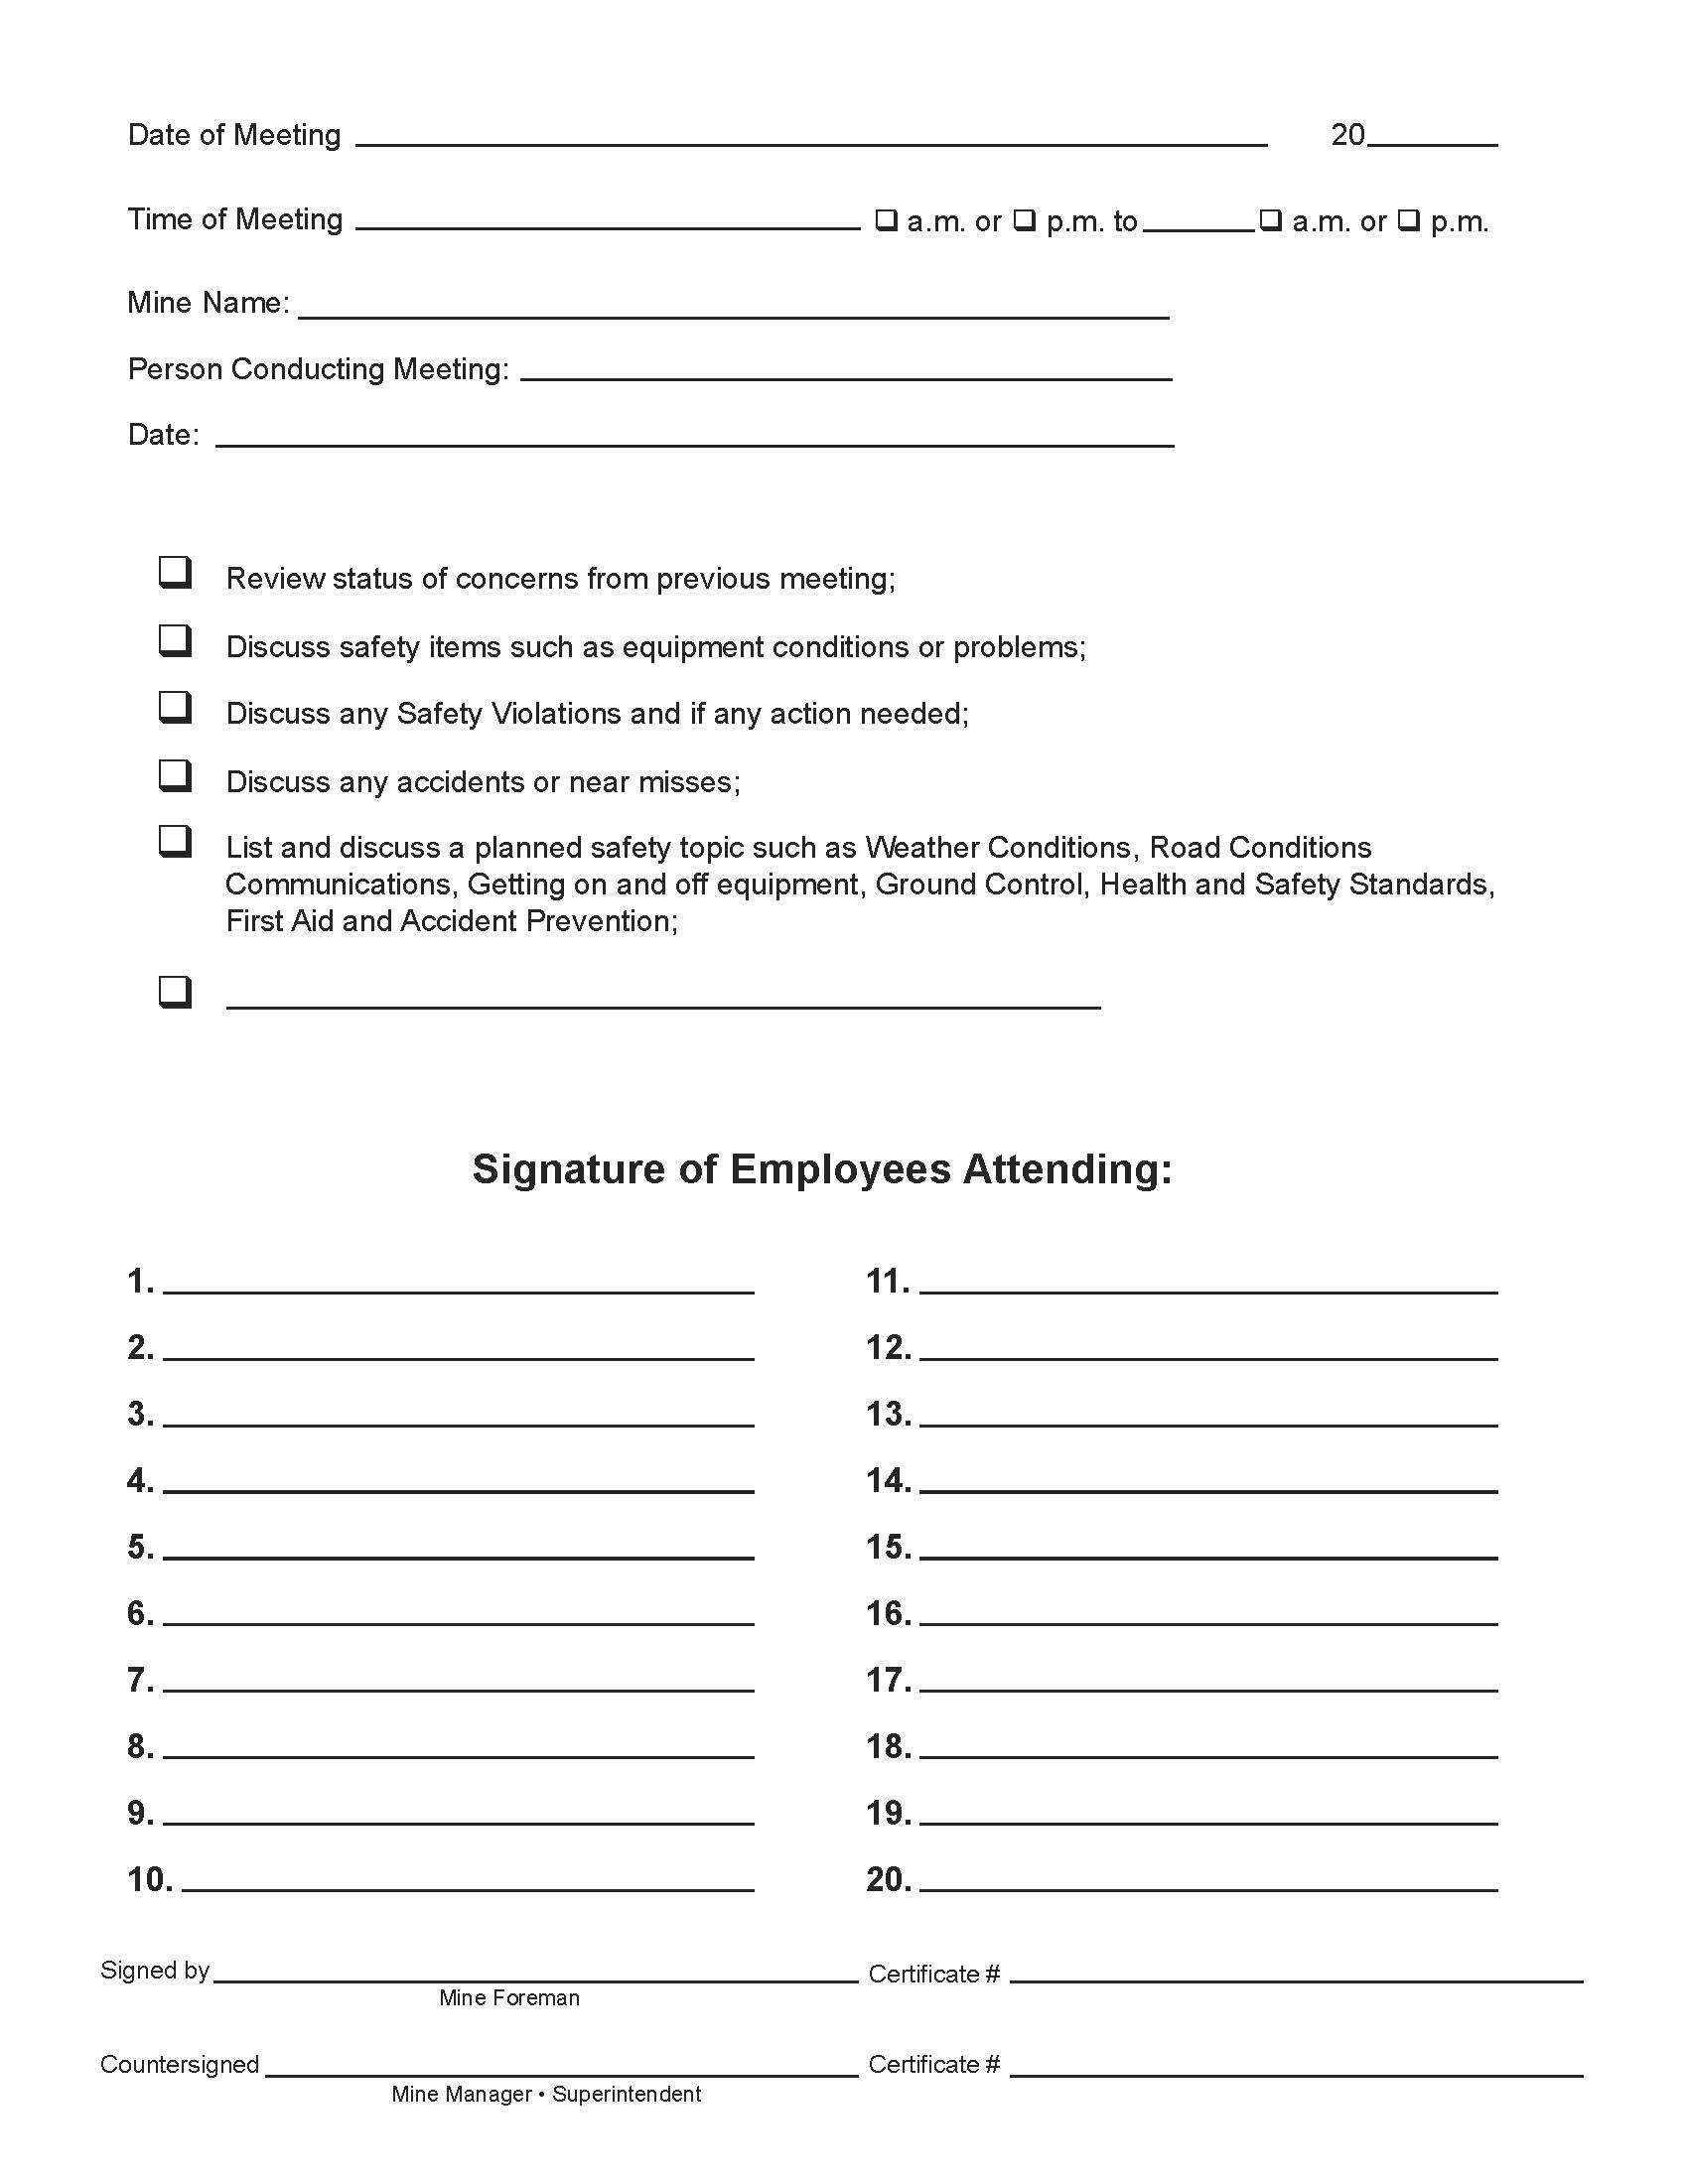 Safety Meeting Forms Free Download December Calendar